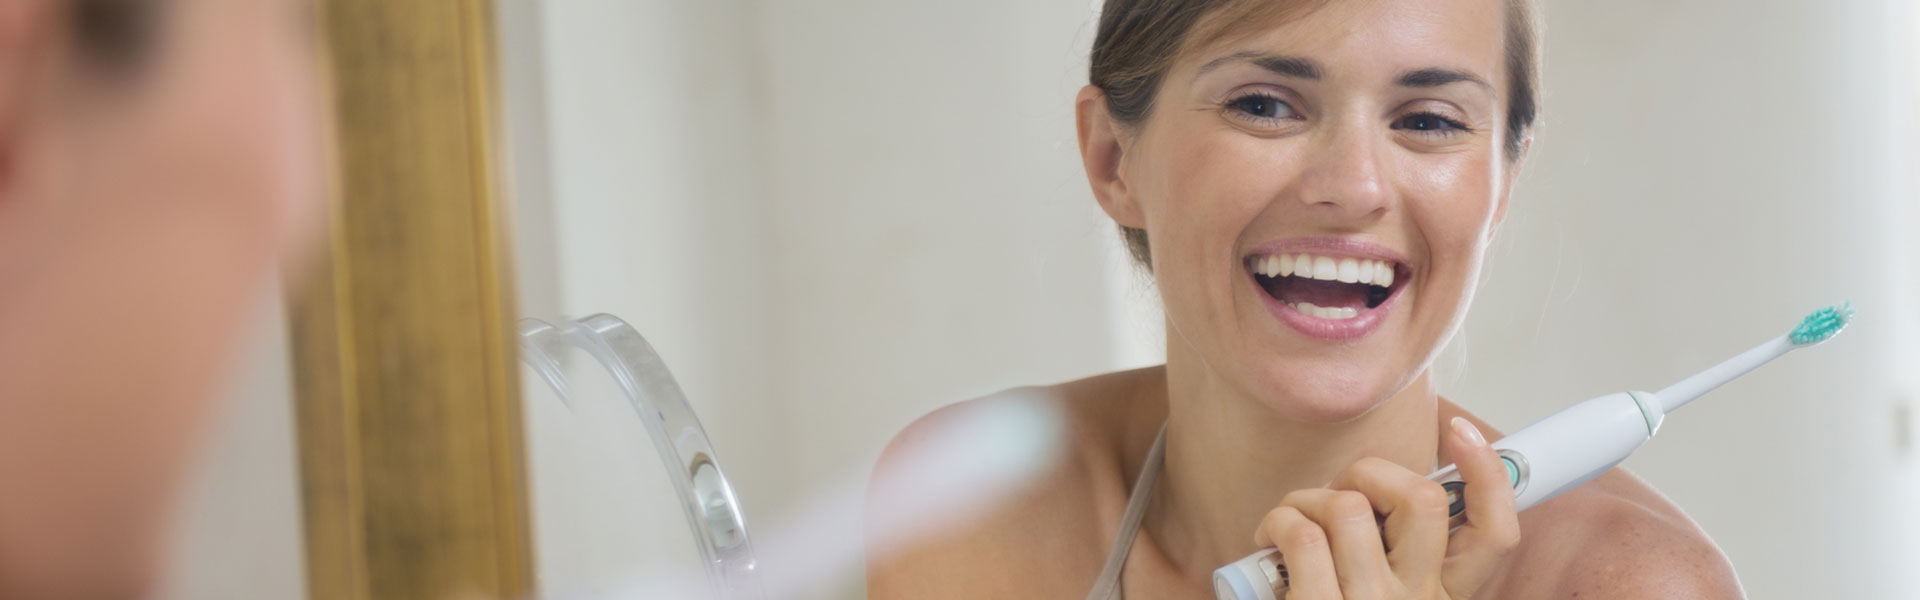 A woman is smiling while holding a toothbrush